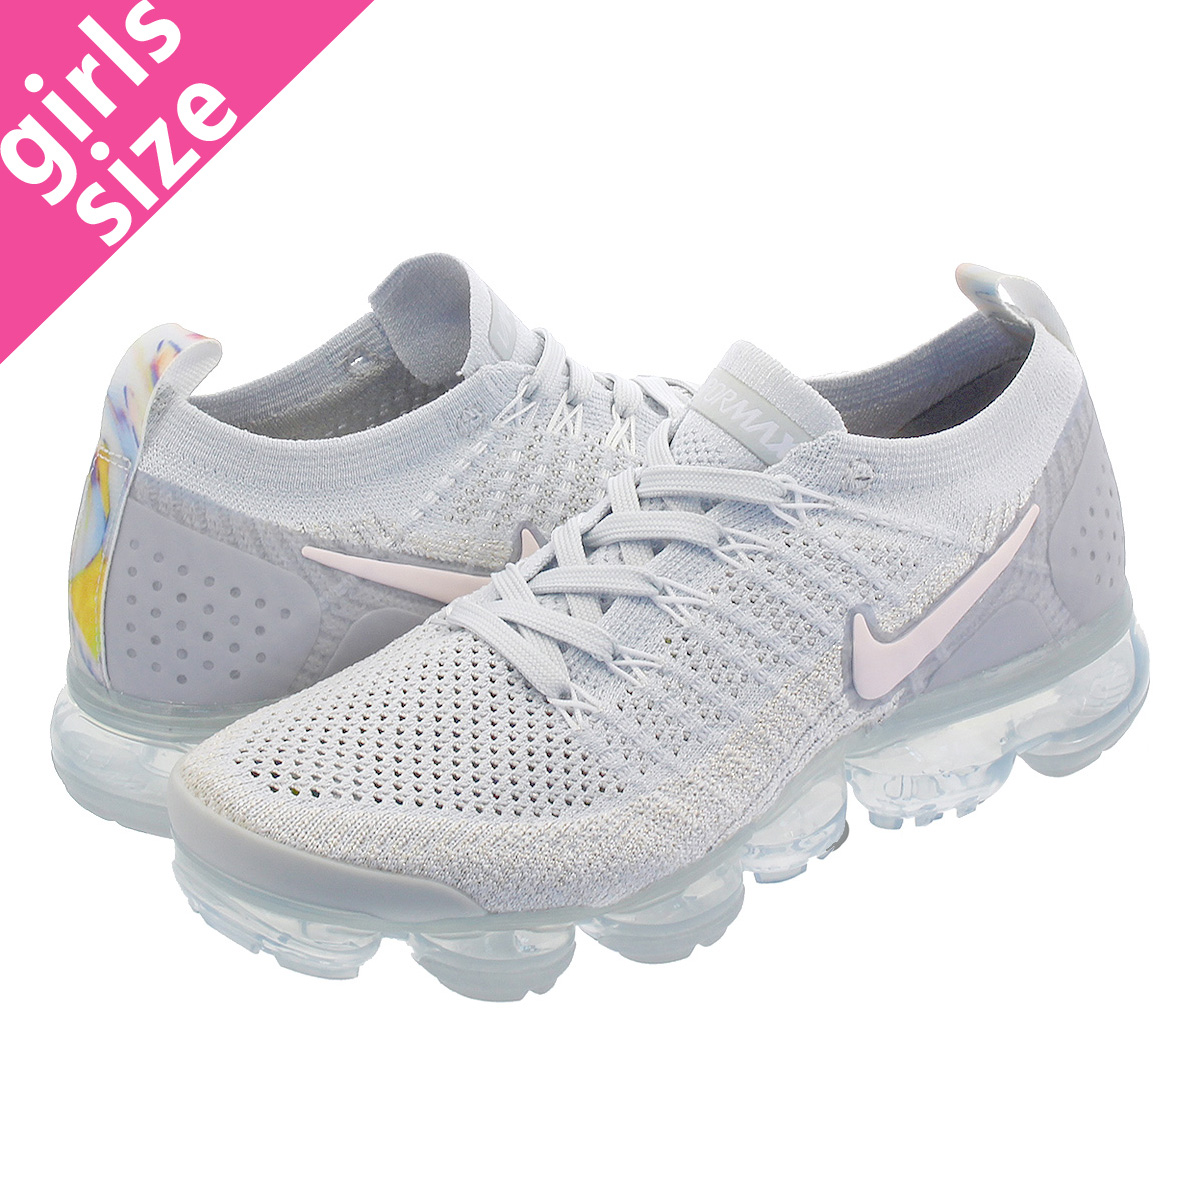 f9a14d69c98b3 NIKE WMNS AIR VAPORMAX FLYKNIT 2 Nike women vapor max fried food knit PURE  PLATINUM ARCTIC PINK WHITE 942